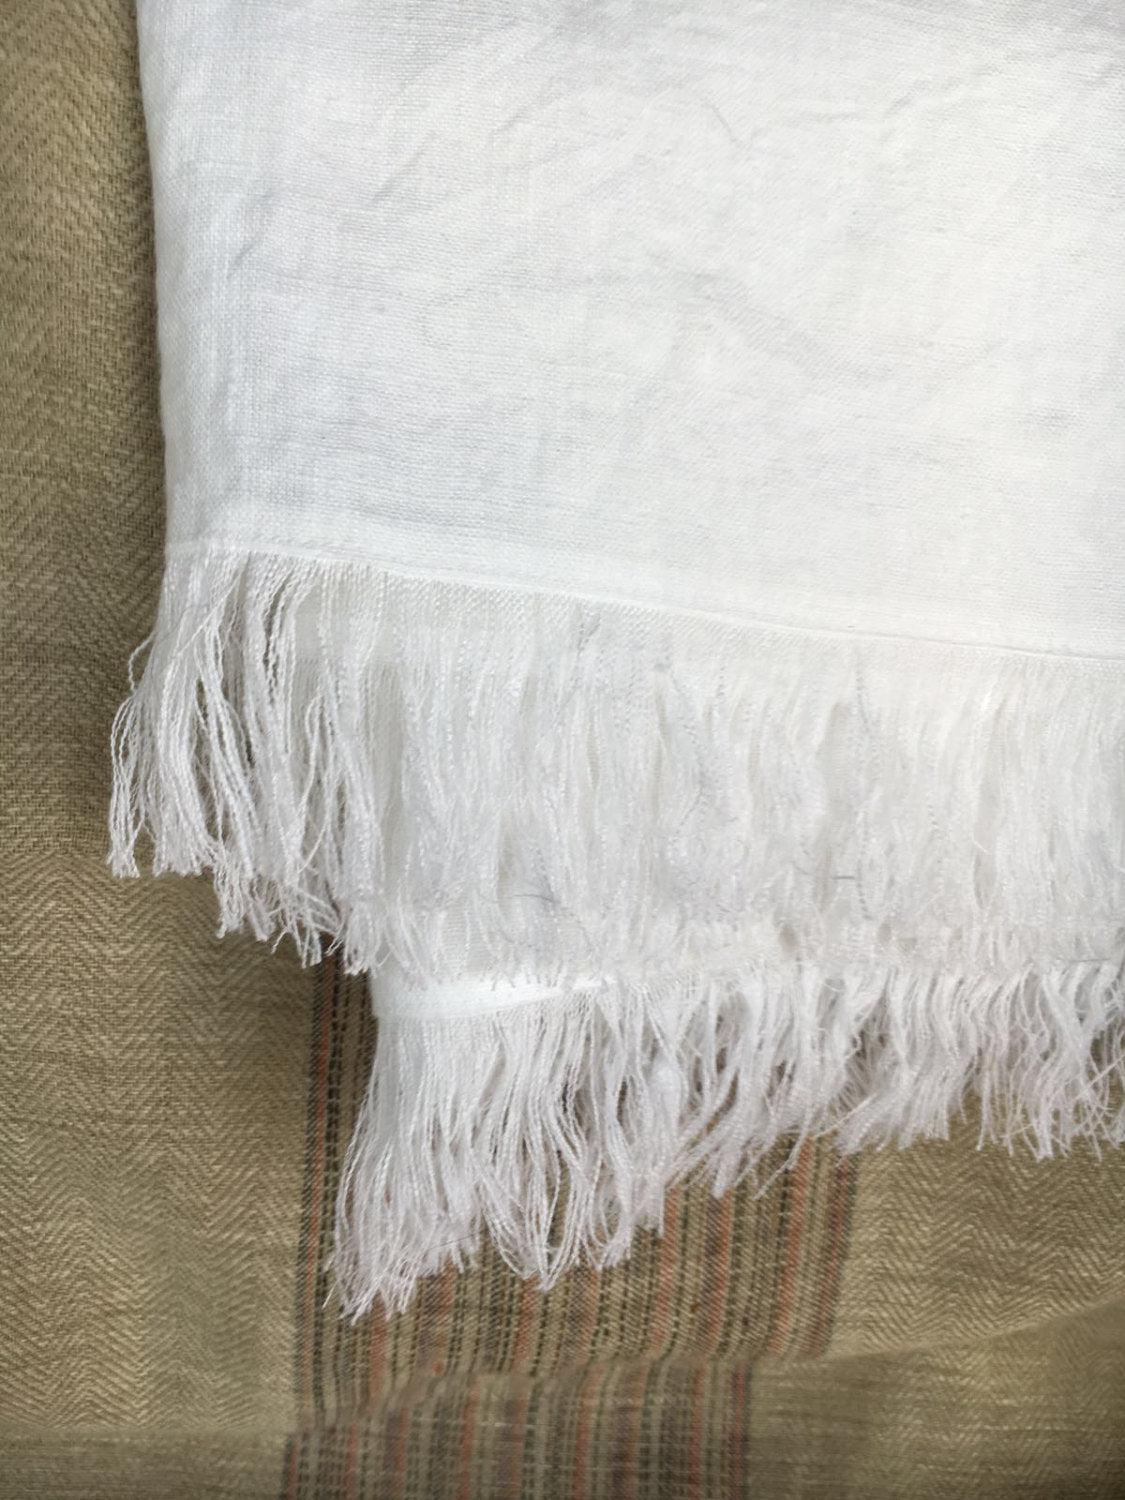 White Linen Throw, Light Blanket, Light Throw, Natural Blanket, Daybed blanket, Summer Blanket, European Linen